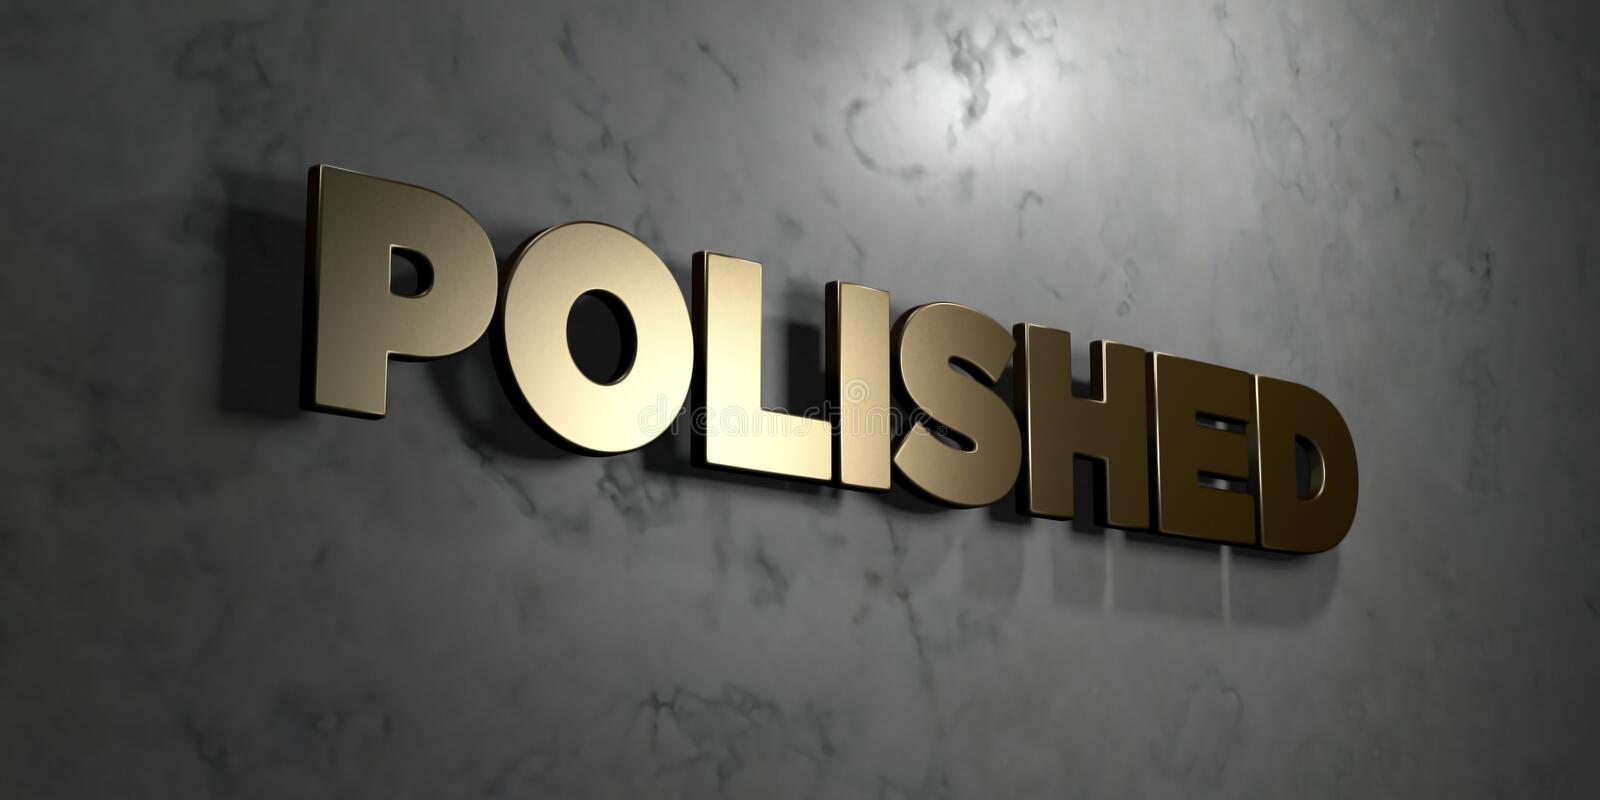 Polished - Gold sign mounted on glossy marble wall - 3D rendered royalty free stock illustration vector illustration